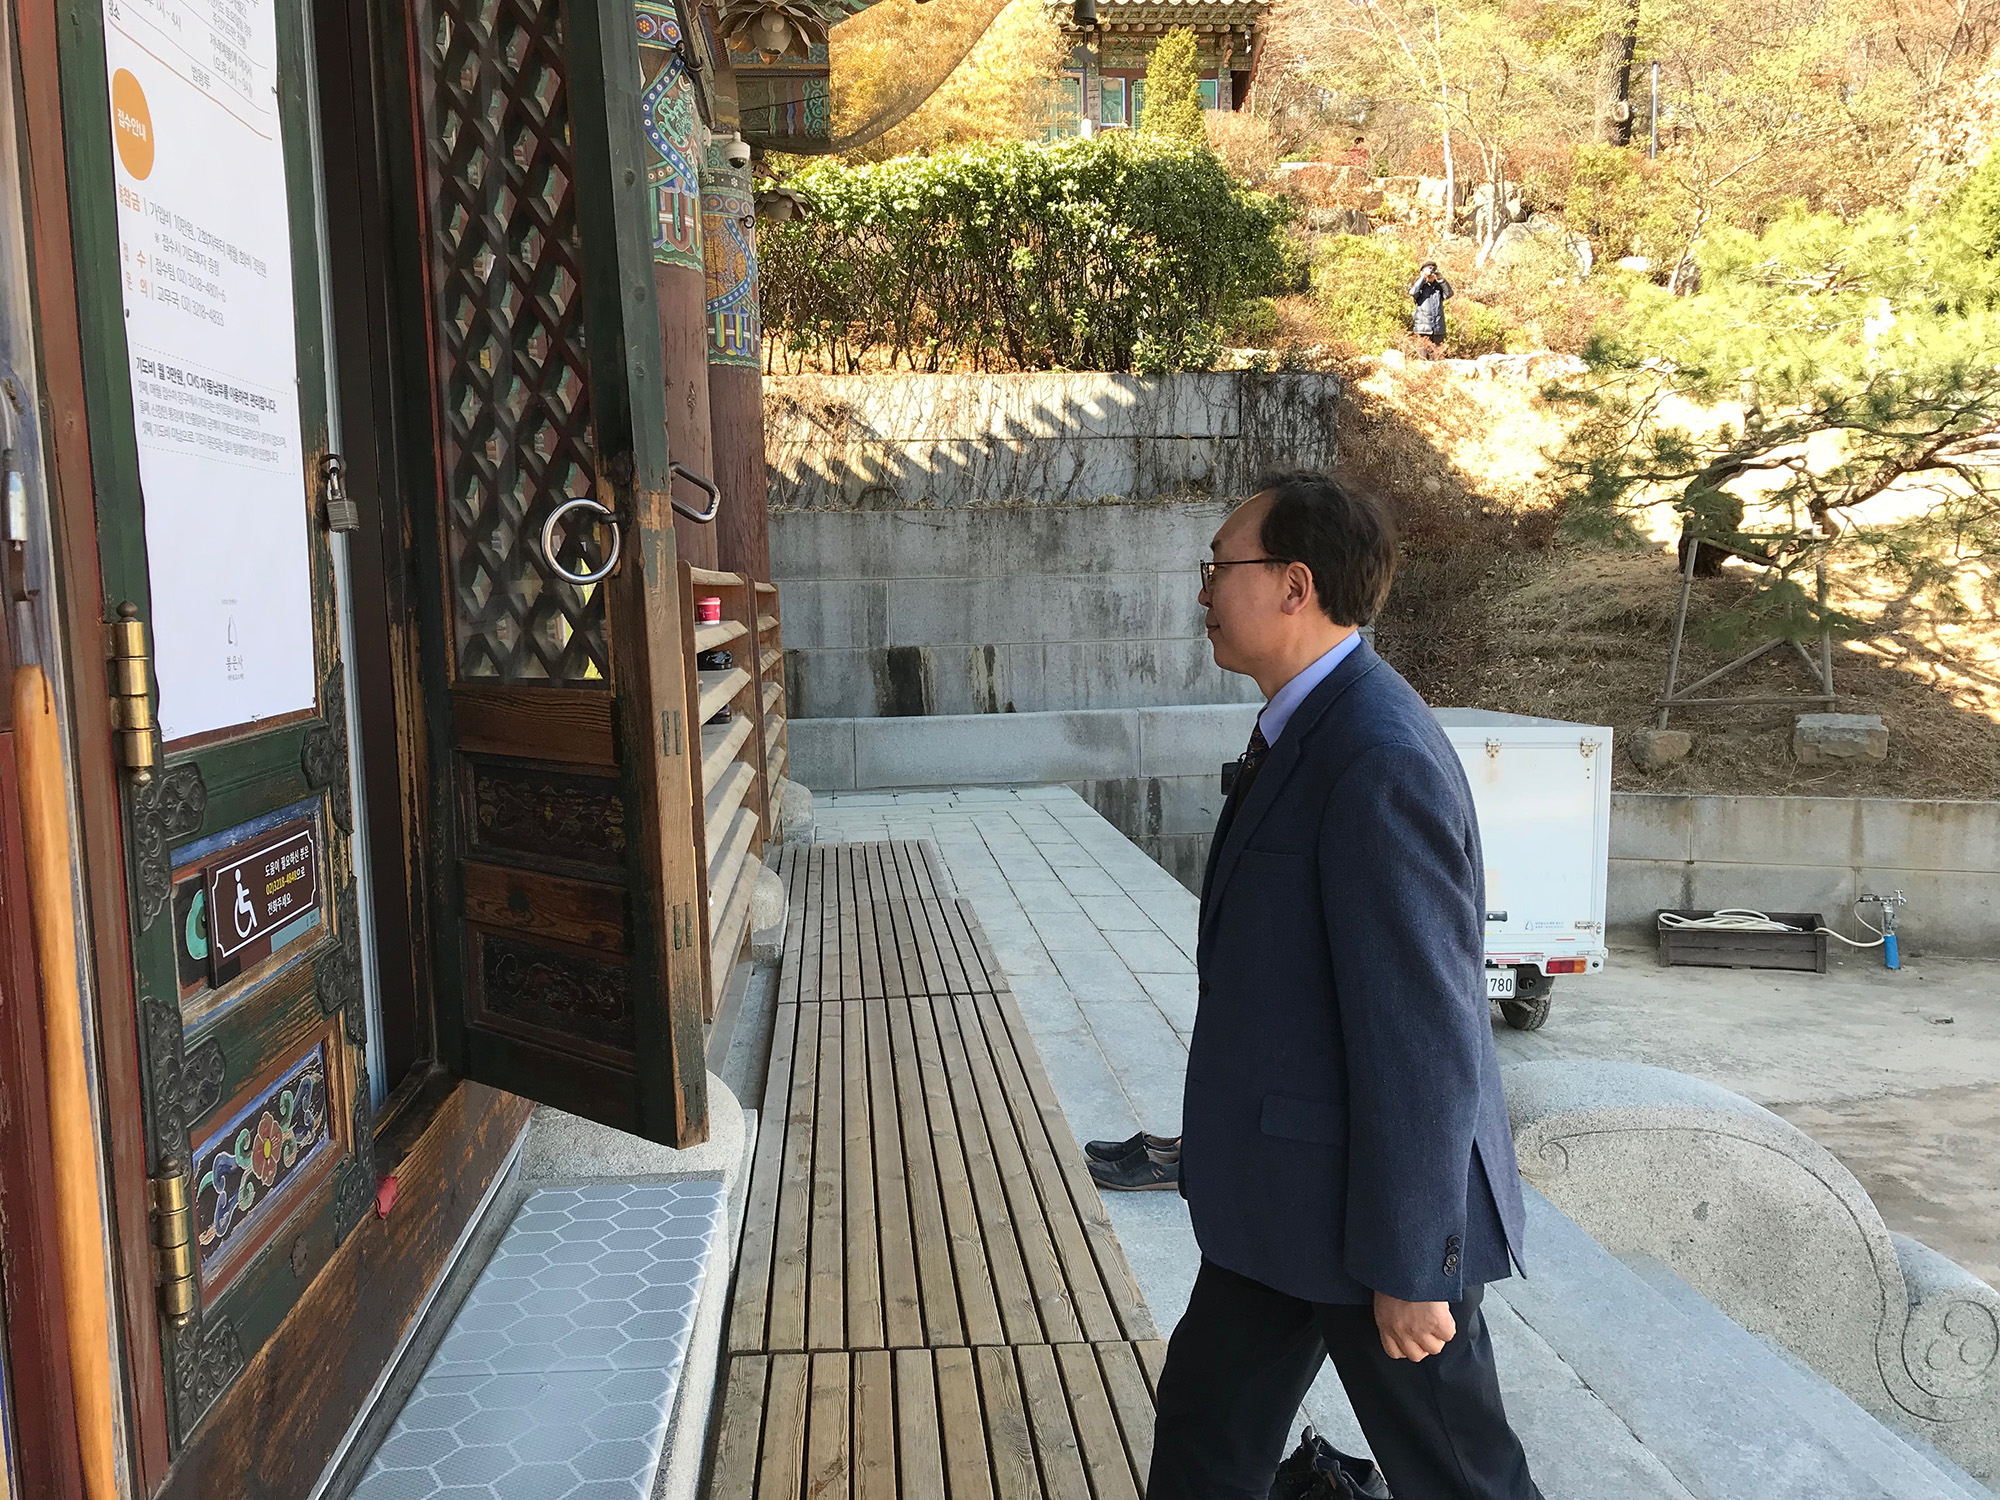 Wonyoung Sohn visits the 1,200-year-old Bongeunsa Temple. He has been advocating for inter-faith understanding, after incidents in which radical Christians vandalized Buddhist temples. (Chris Damien/GroundTruth)